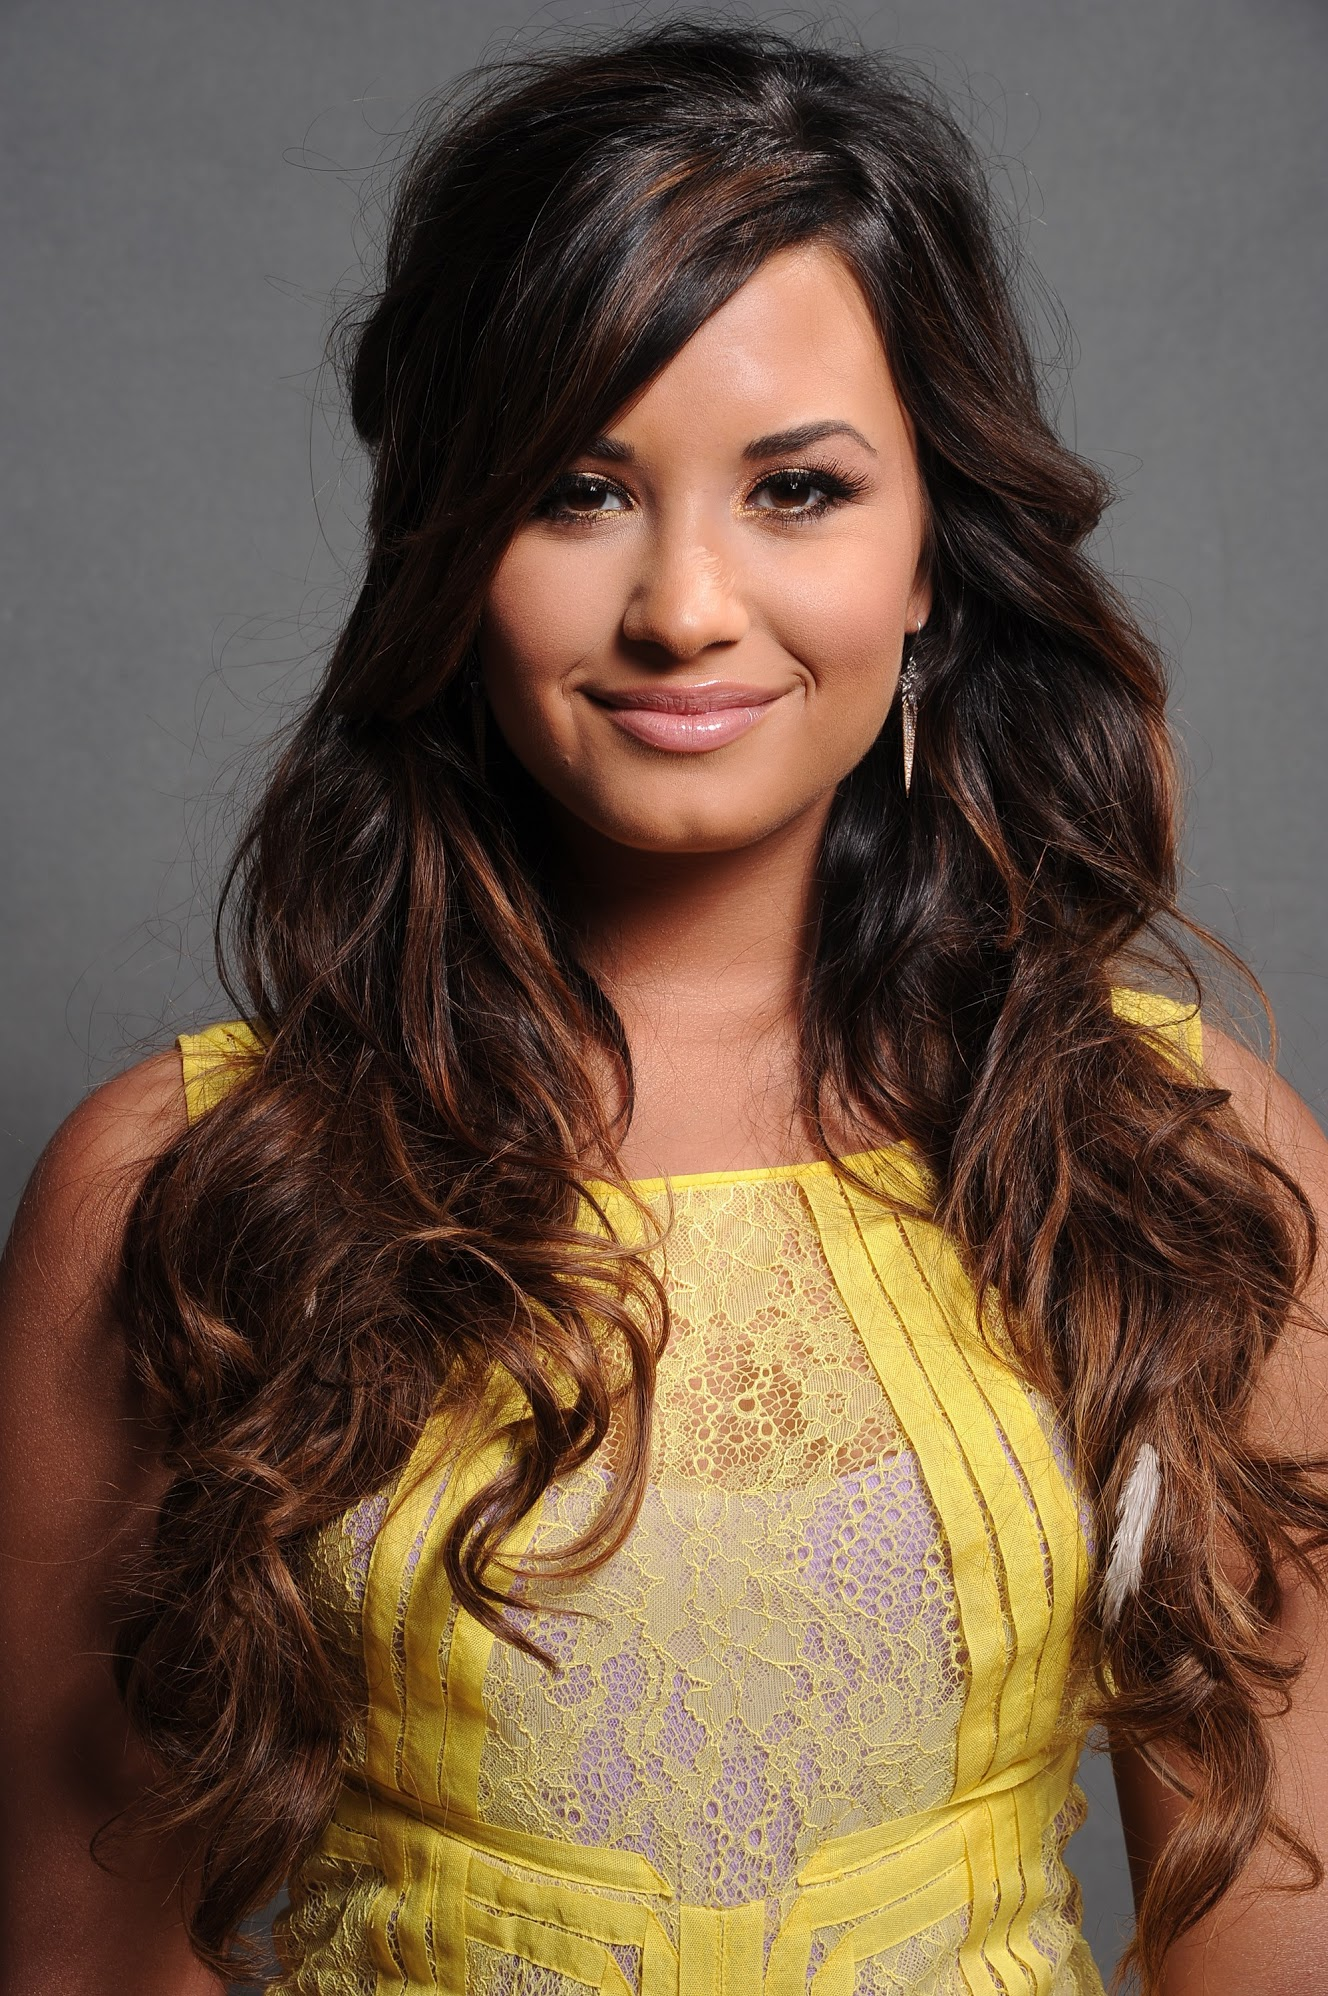 Demi Lovato | Camp Rock Wiki | FANDOM powered by Wikia